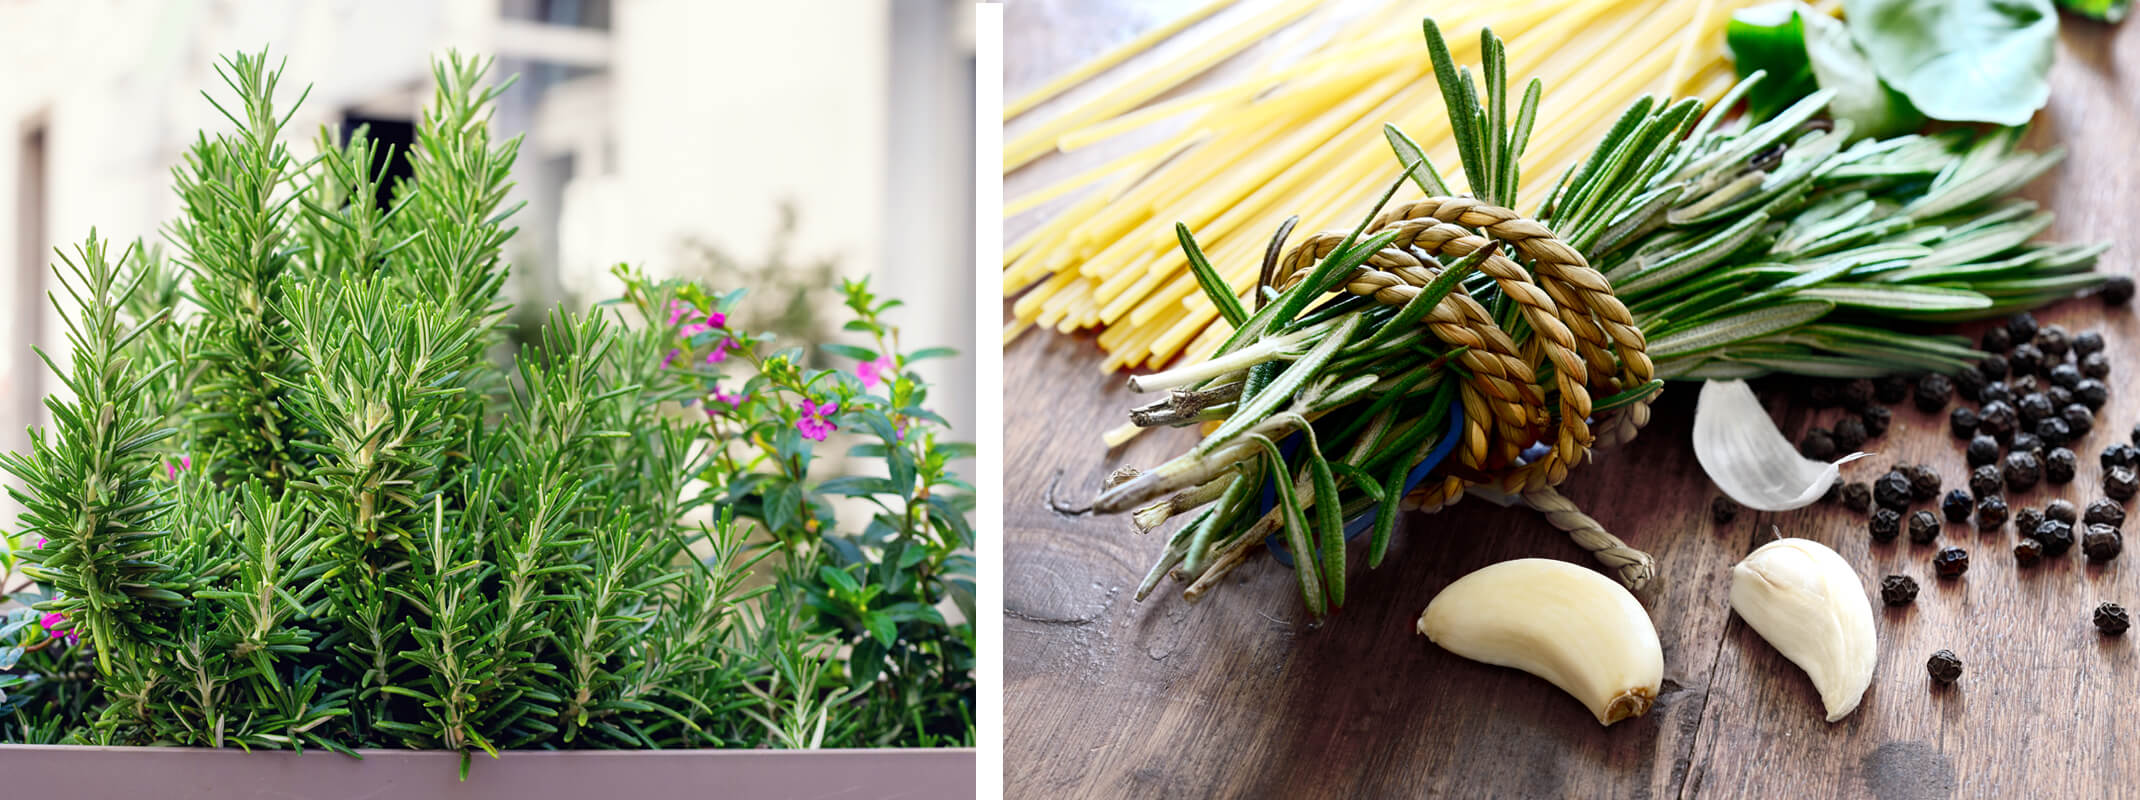 2 images of rosemary with the first of rosemary growing in a planter on a balcony and the second image shows rosemary clipped and tied  in twine next to fresh garlic and peppercorns and dried pasta